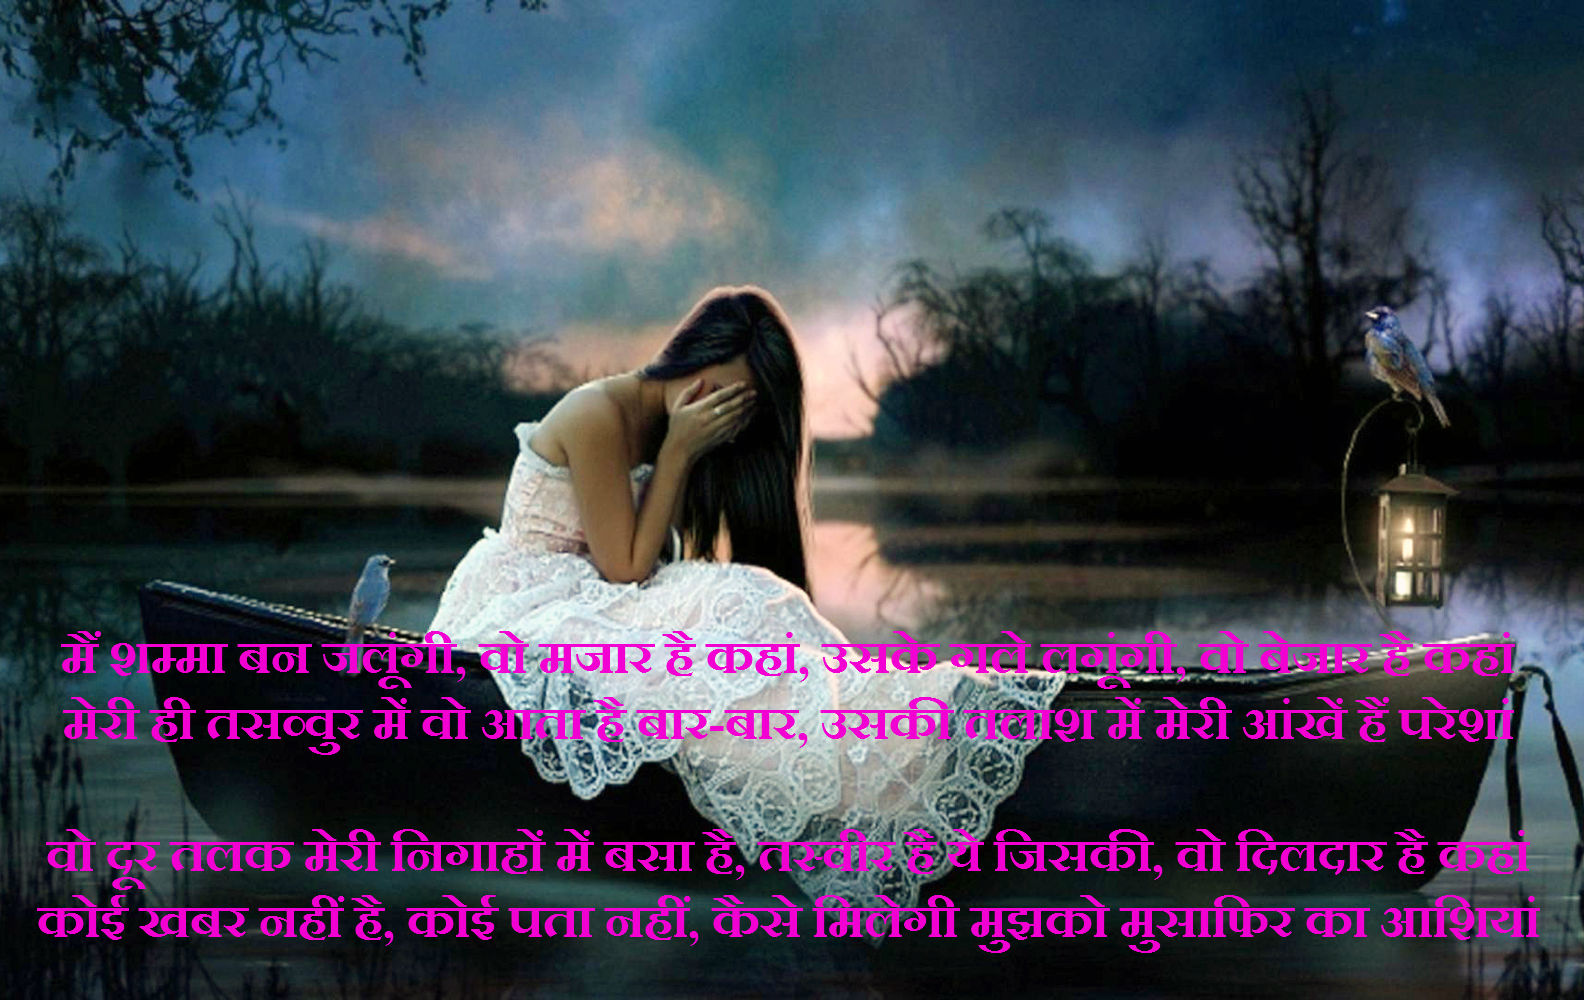 Very Sad Love Wallpapers Check Out Very Sad Love: Hd Images Shayri Hindi In Parents, Check Out Hd Images